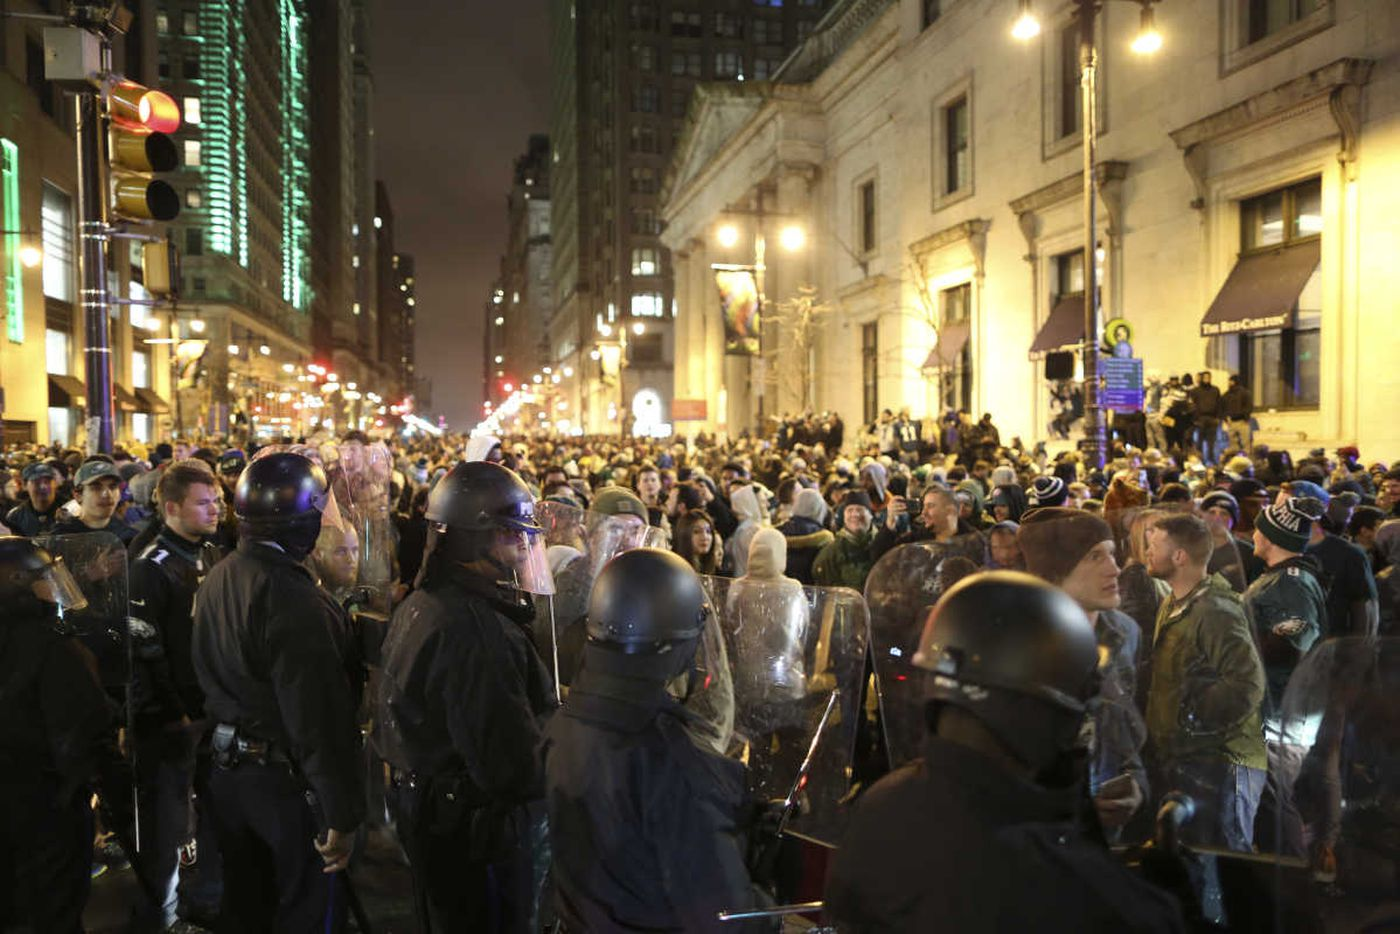 Philly cops: We're ready for Super Bowl parade